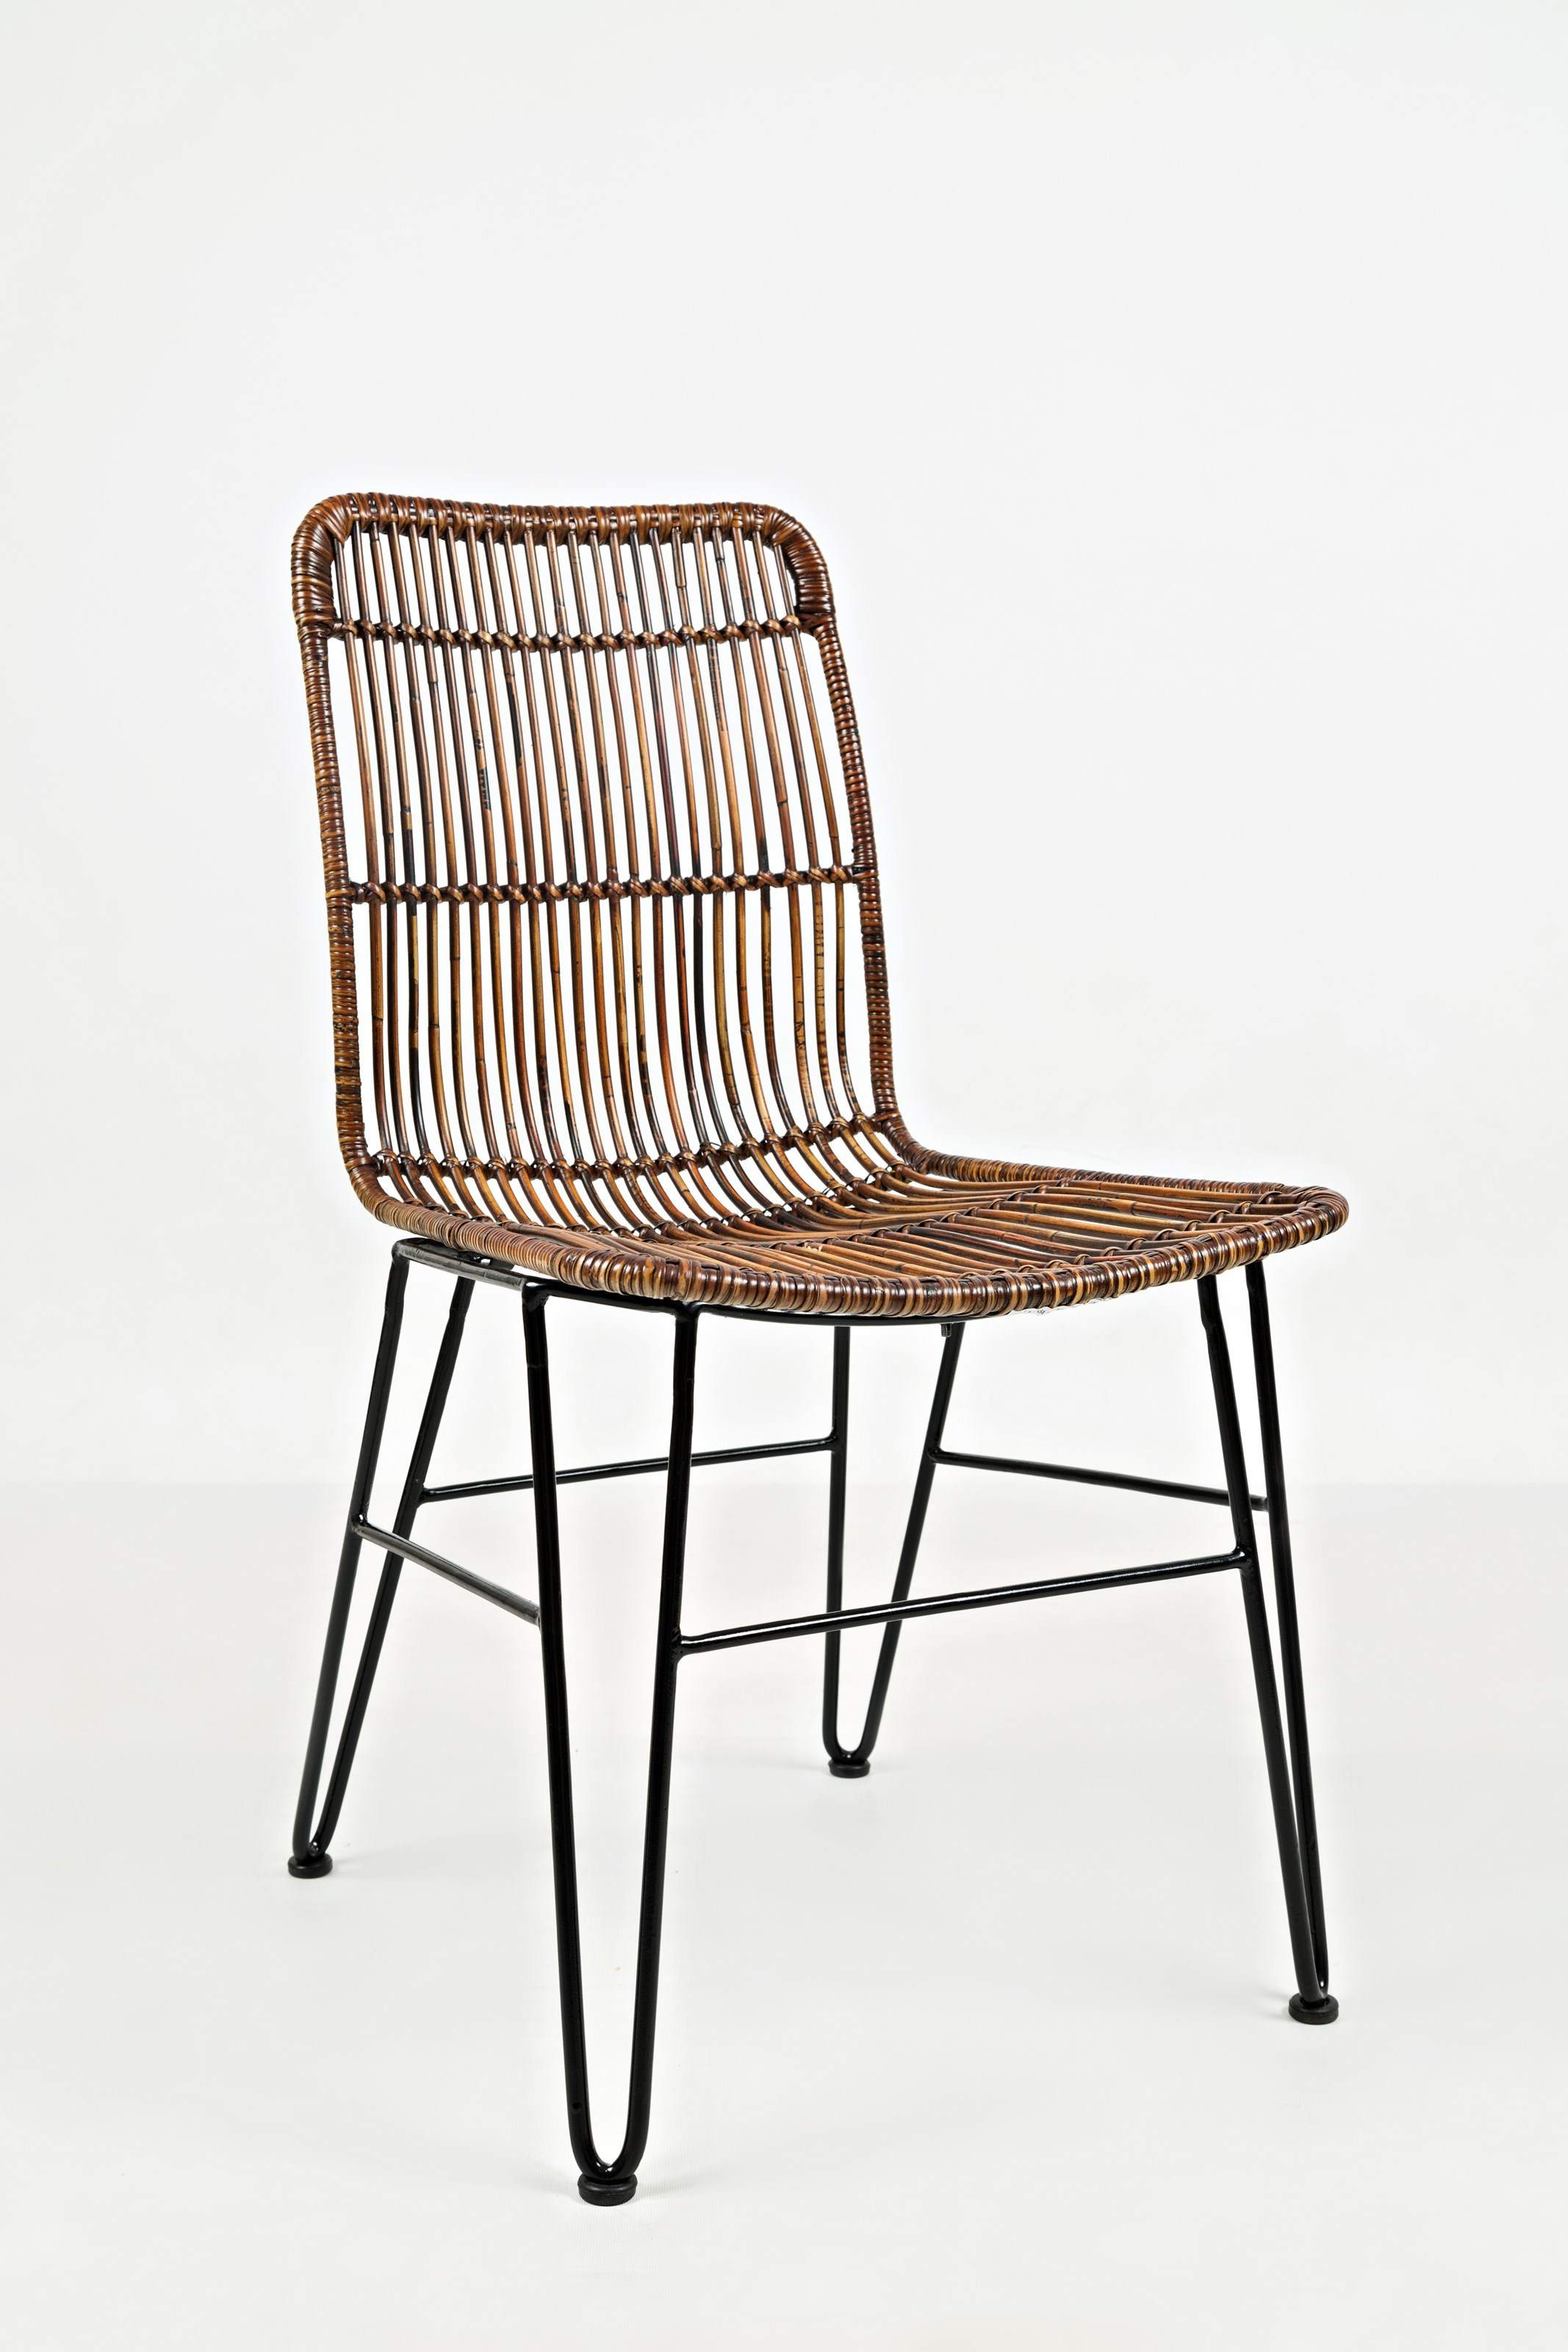 Jofran Urban DwellerWire And Rattan Dining Chair ...